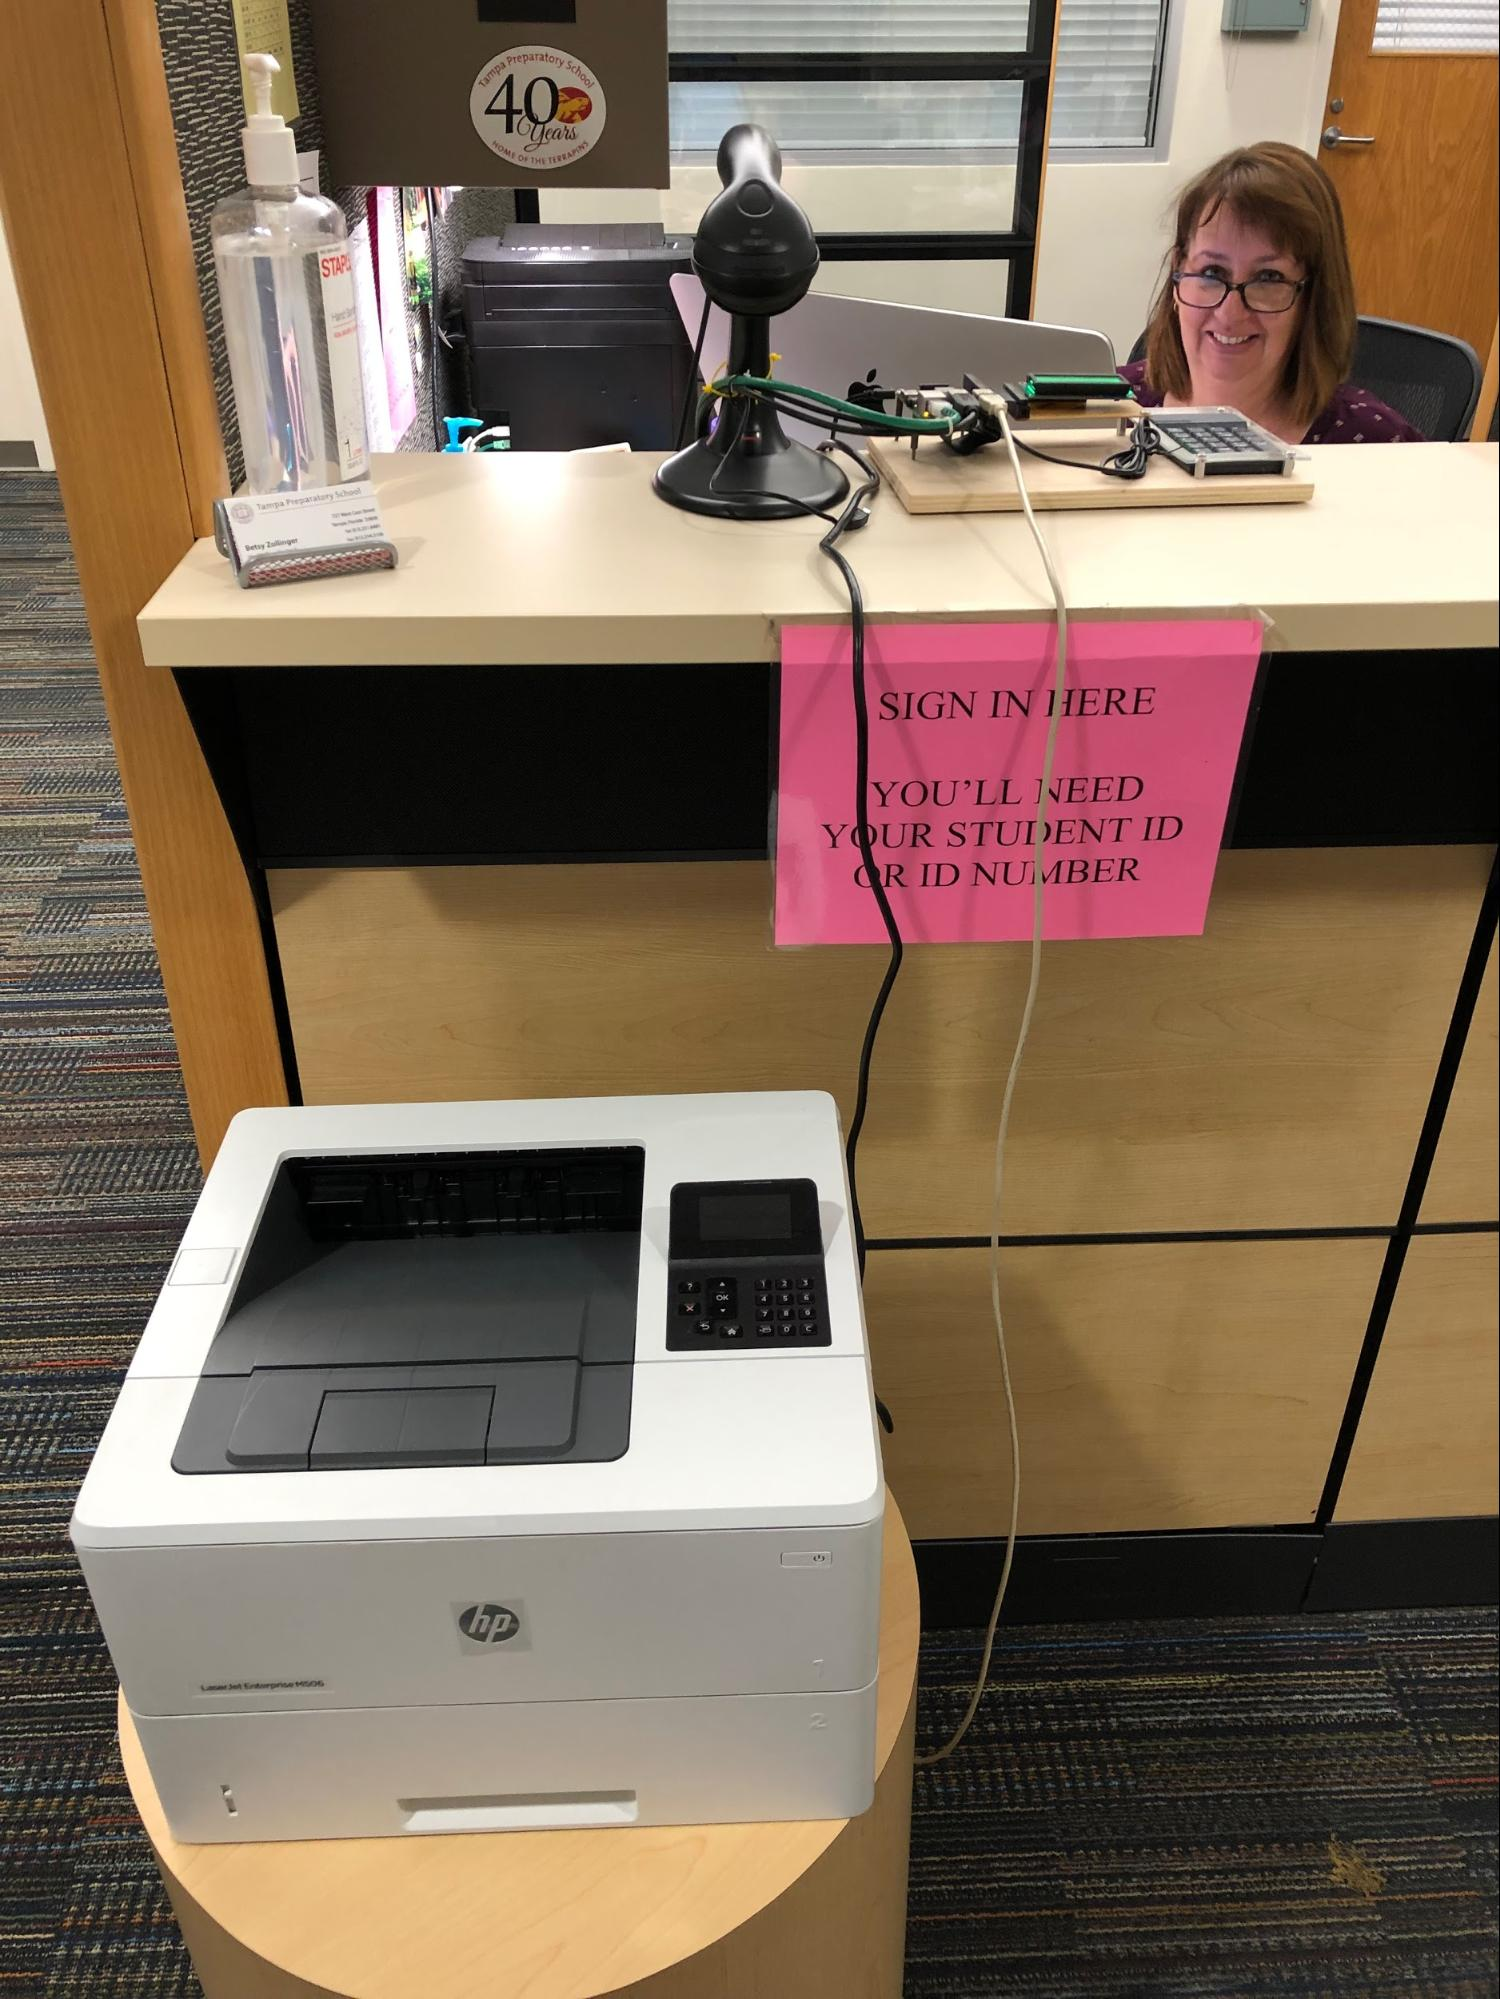 student check-in system created in STEM programming class